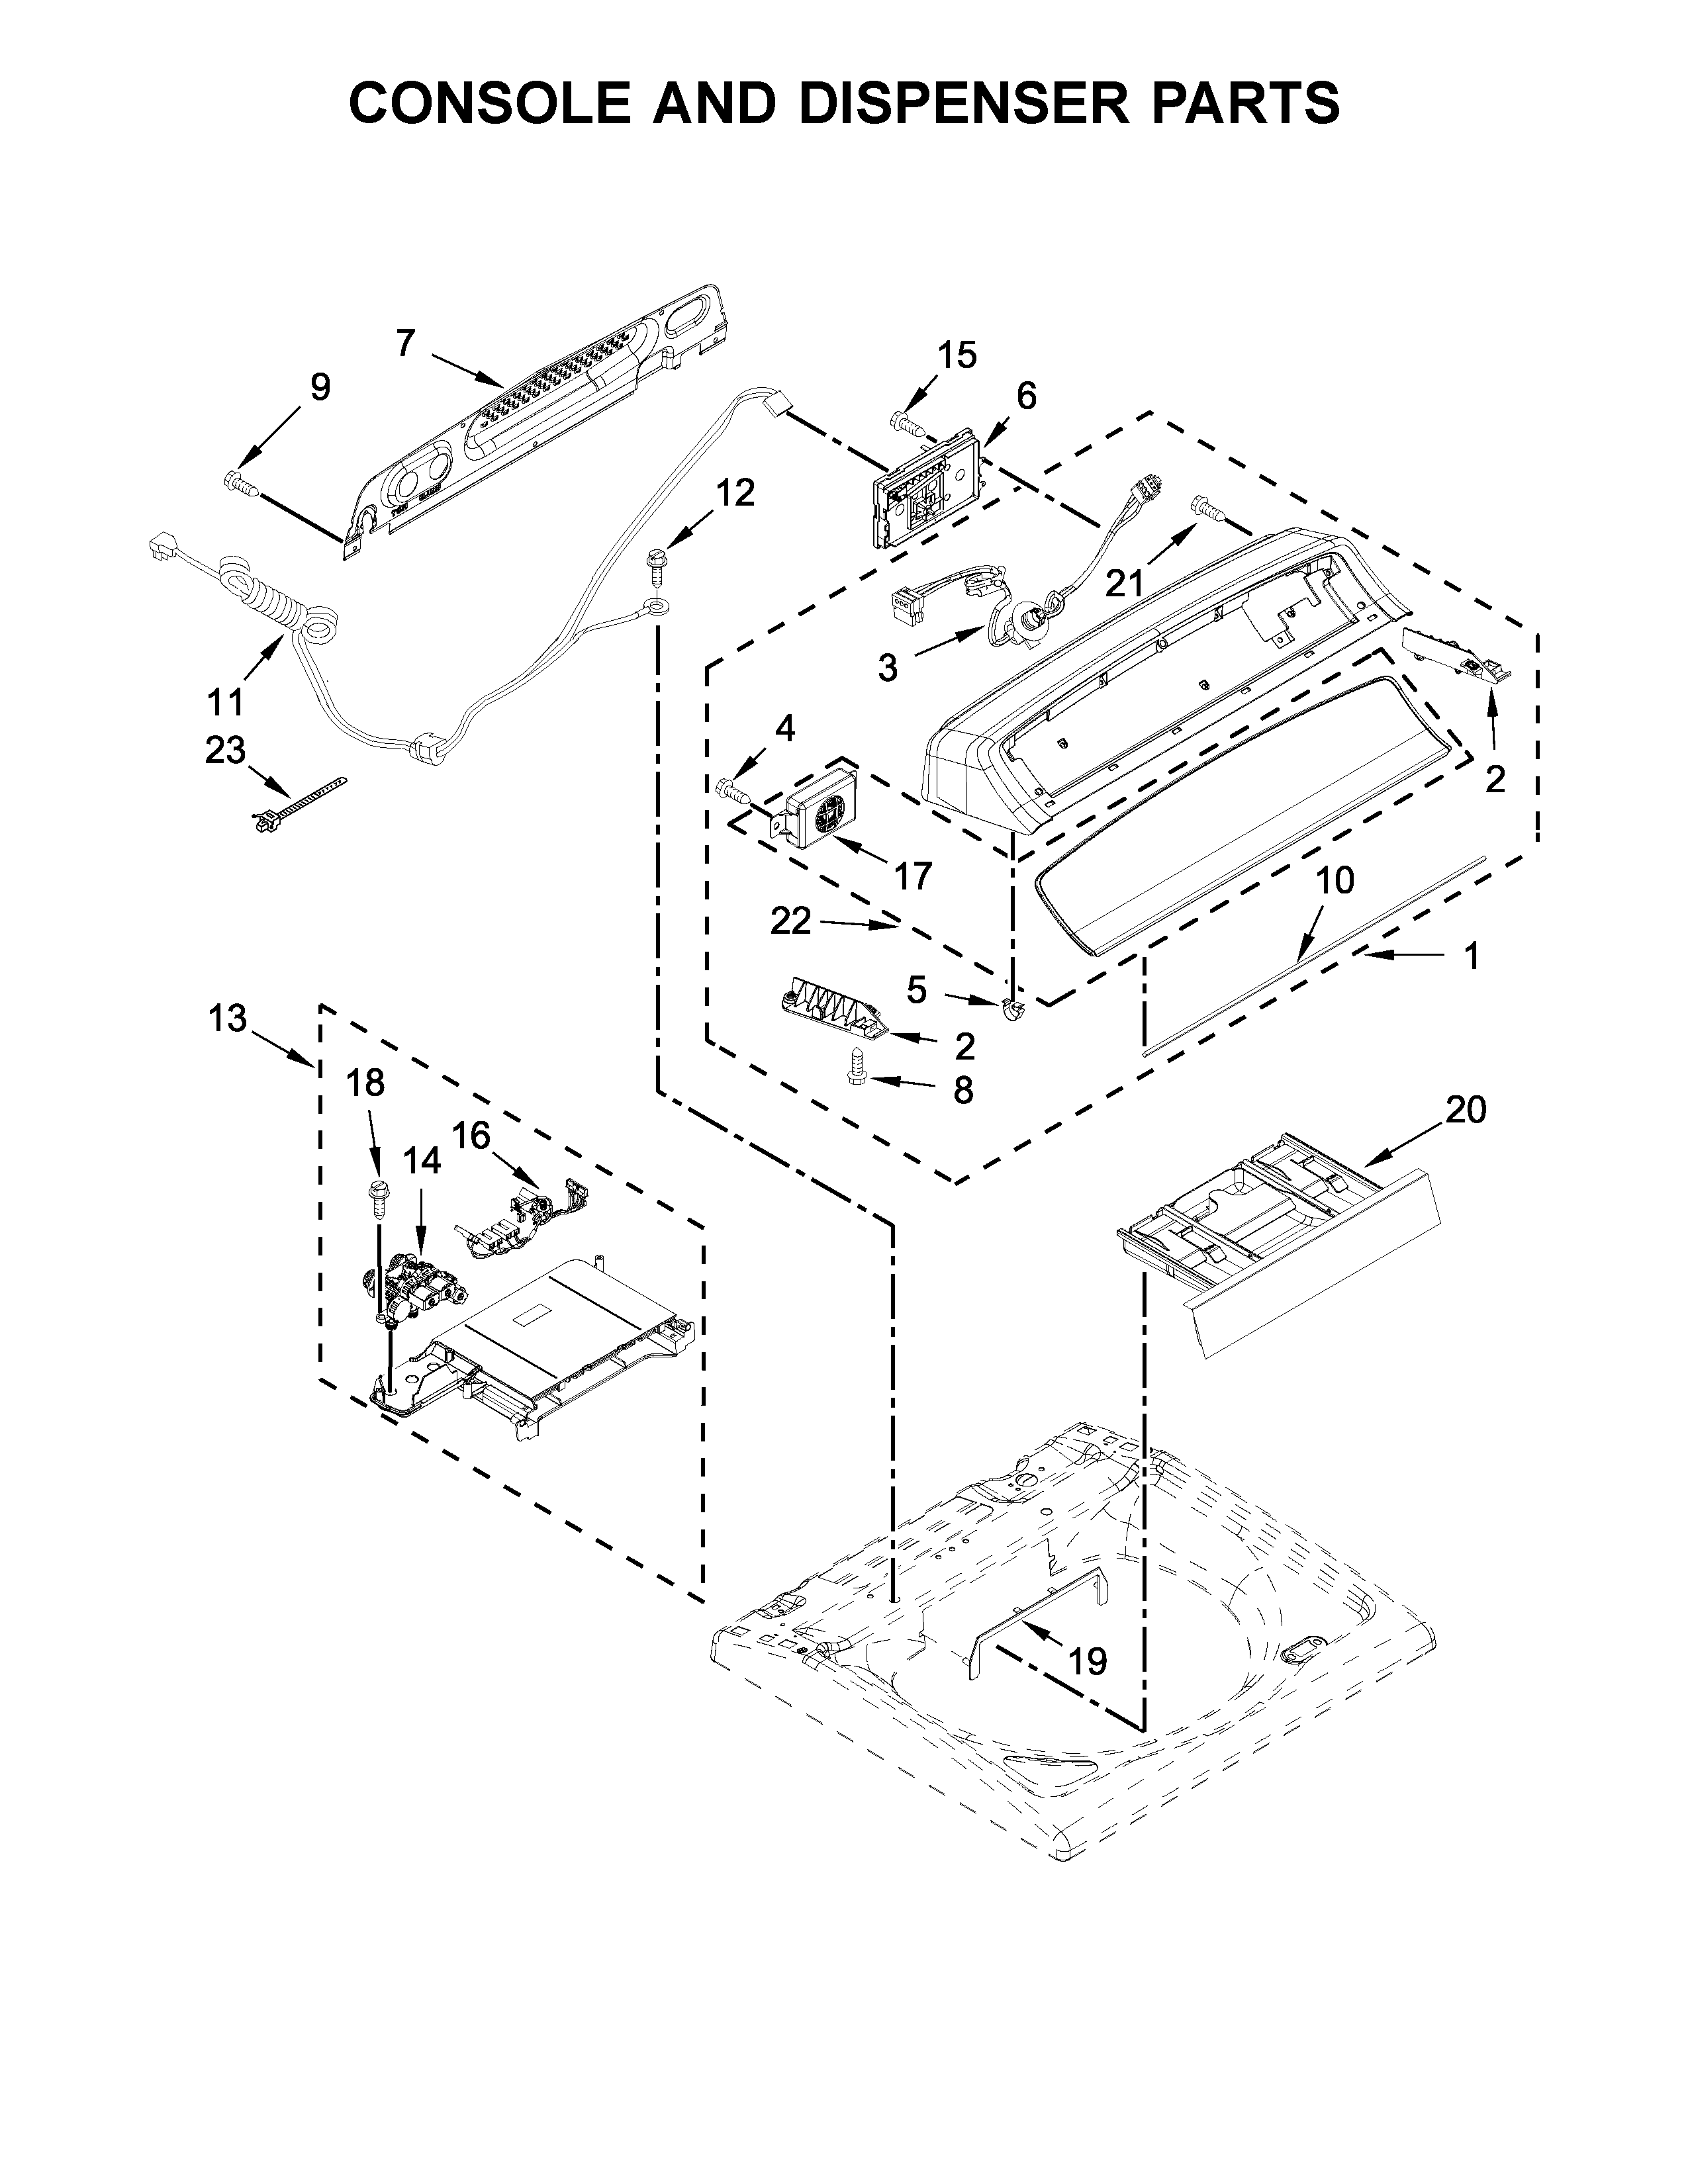 Whirlpool WTW7040DW2 console and dispenser parts diagram